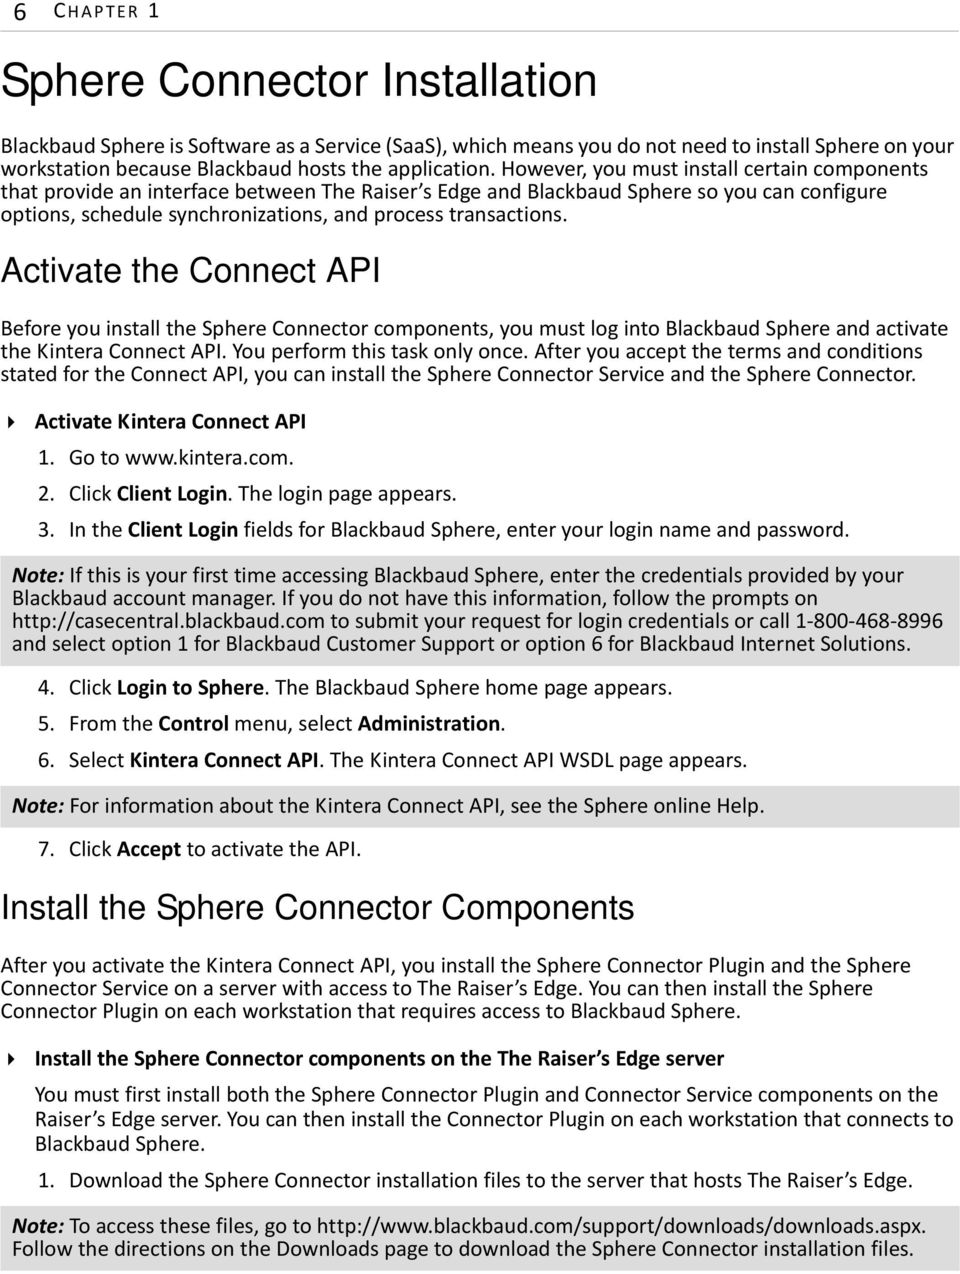 Activate the Connect API Before you install the Sphere Connector components, you must log into Blackbaud Sphere and activate the Kintera Connect API. You perform this task only once.